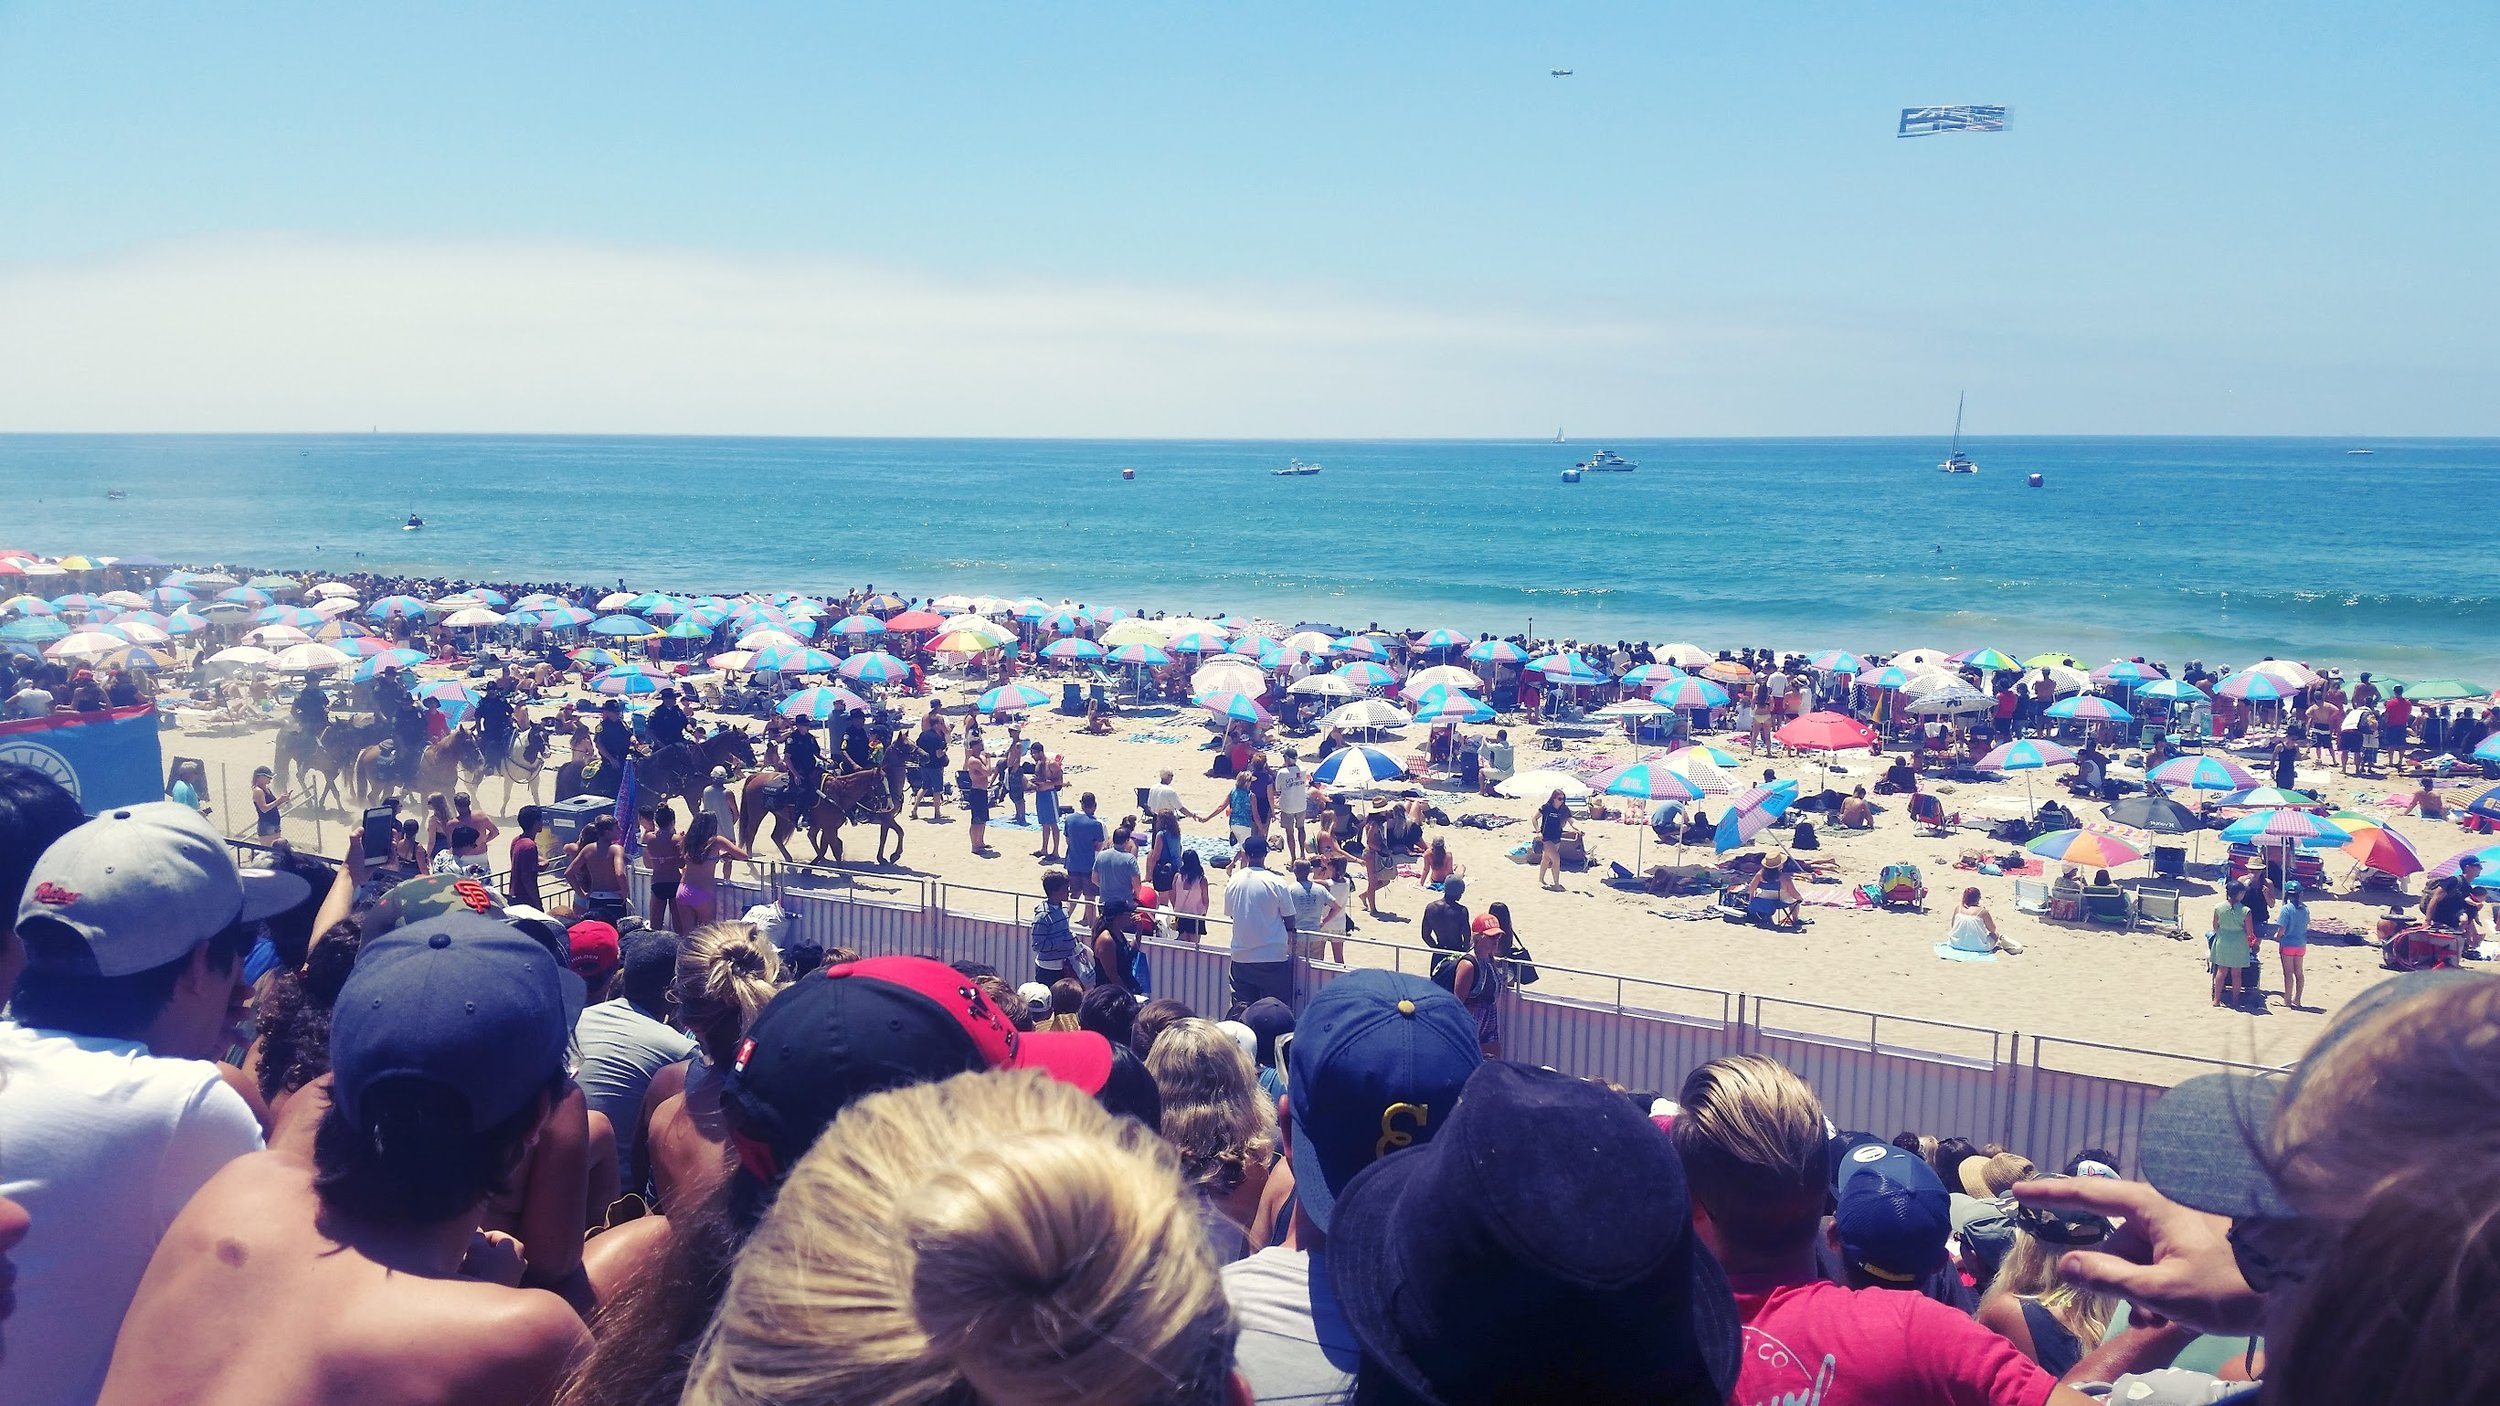 U.S. Open of Surfing in Huntington Beach. About as summer as you can get in Southern California.